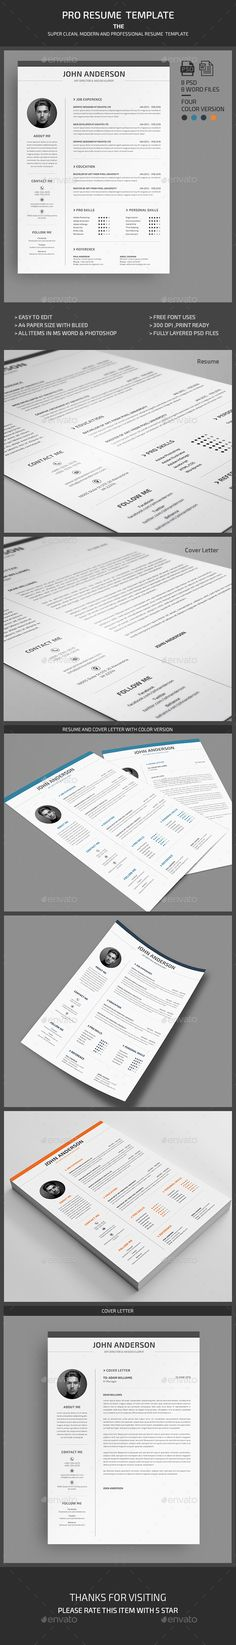 Pro Infographic Resume Infographic resume, Infographic and Fonts